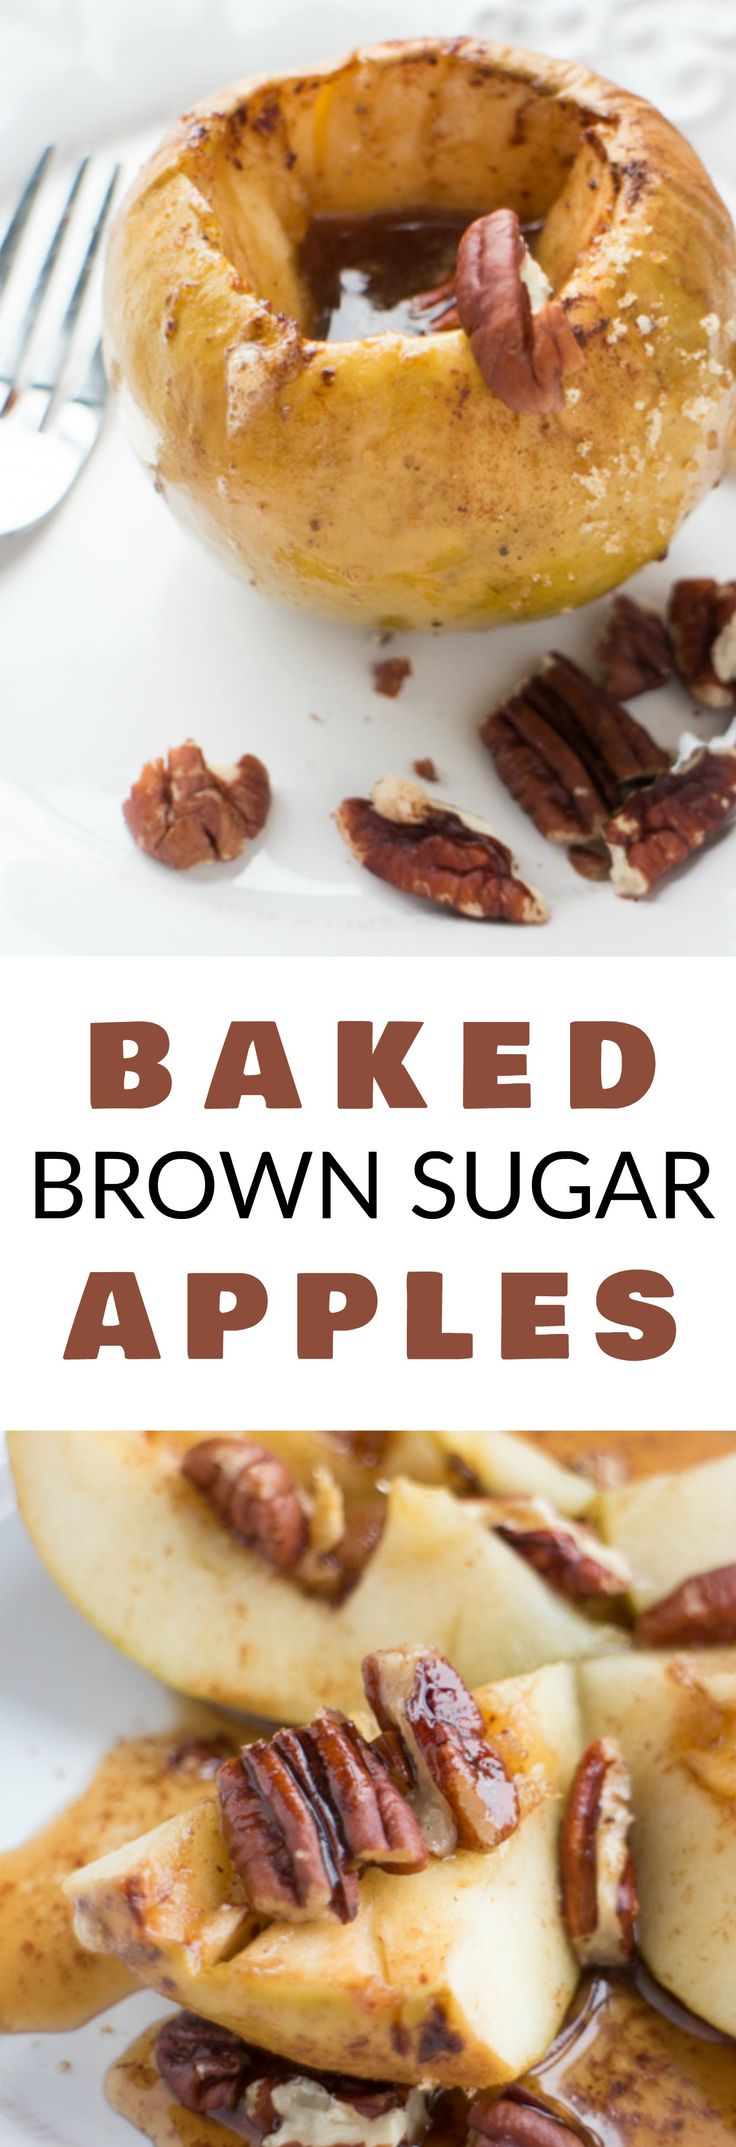 Baked BROWN SUGAR APPLES are DELICIOUS! This easy recipe bakes the apples in the oven stuffed with a cinnamon sugar butter mixture! The taste and smell of these Baked Apples is amazing! It's the perfect healthy apple recipe year round, but I especially love it during apple picking season!